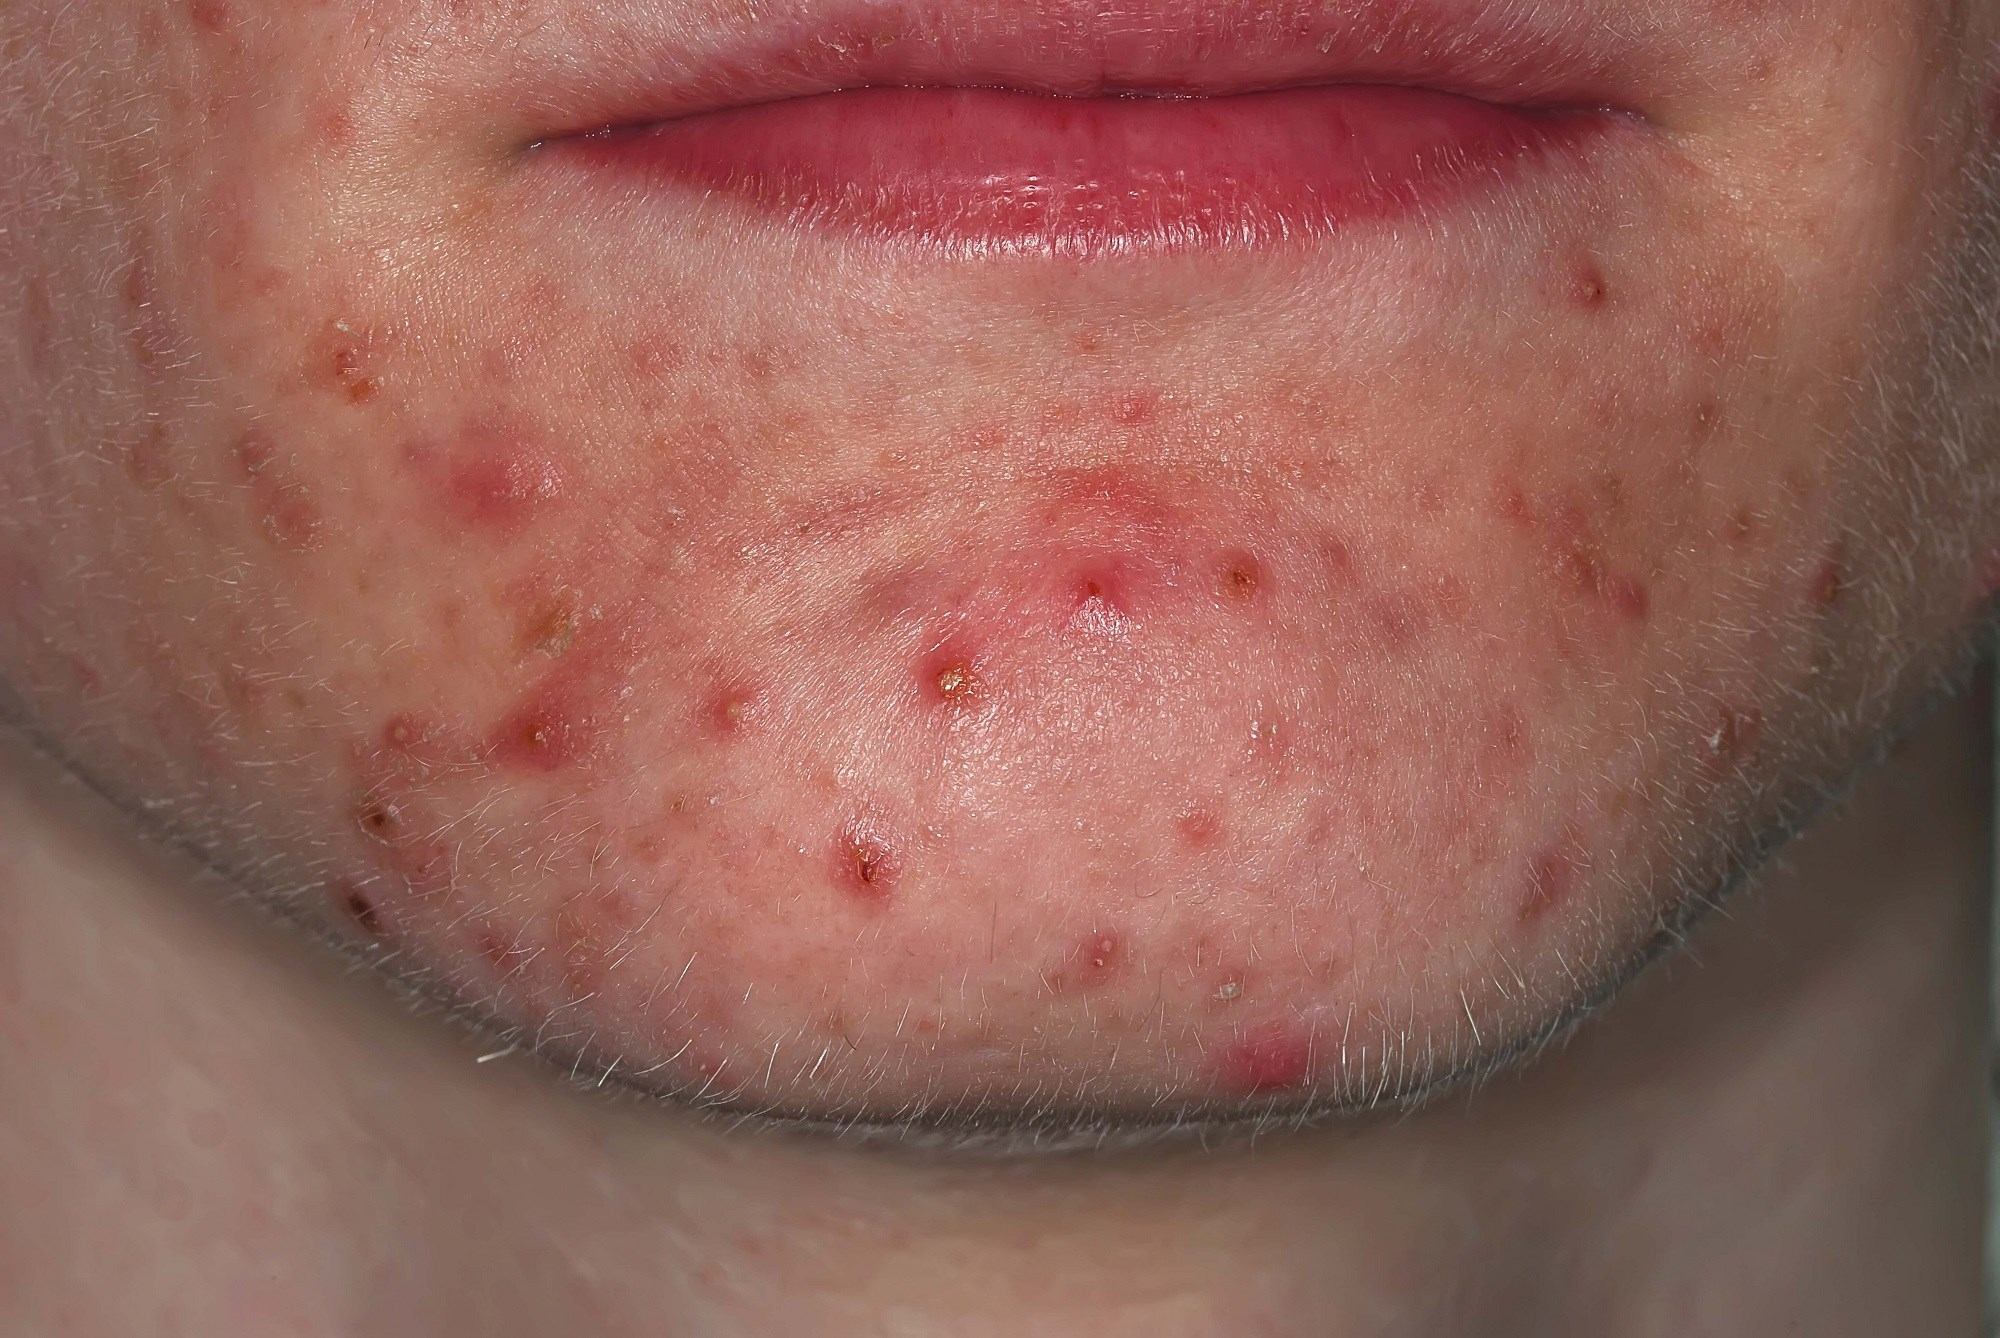 Daily Application of Minocycline Foam Effective Against Acne Vulgaris